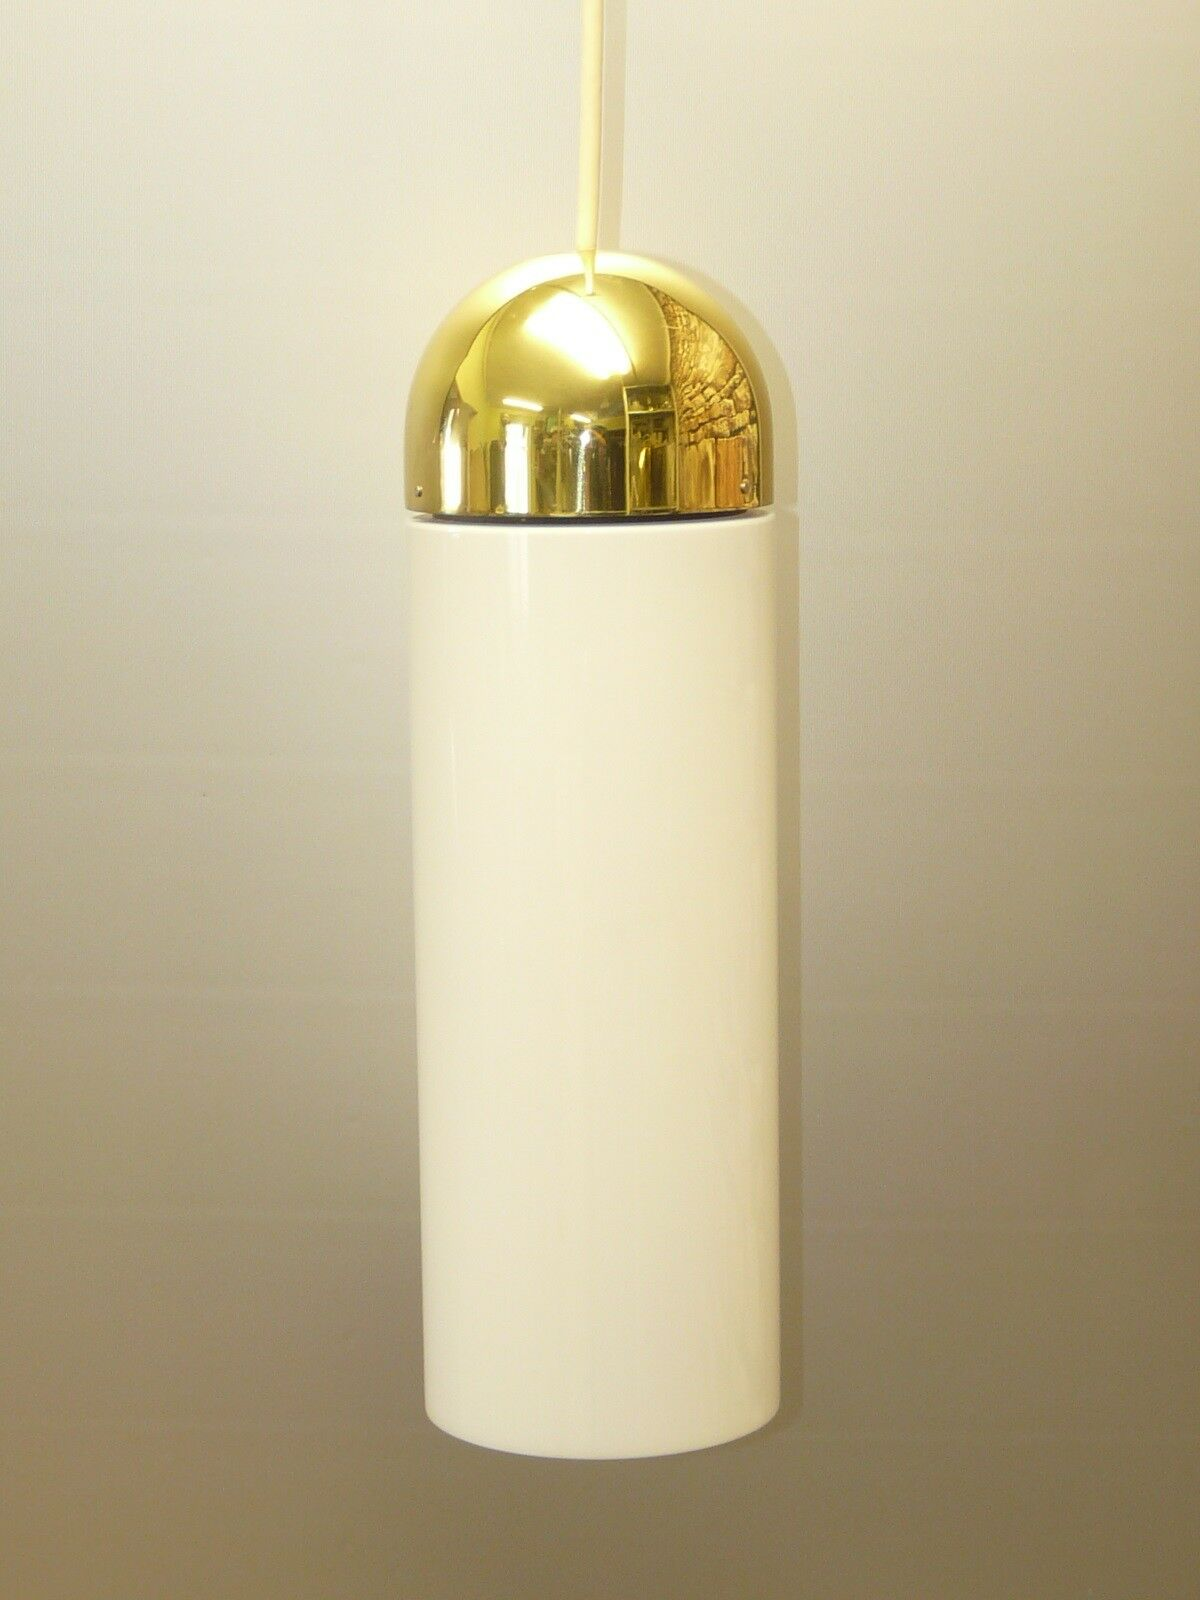 Rare XL pendant light, by  Glashütte LIMBURG, Germany, Gold  Glass  (13 avail.)